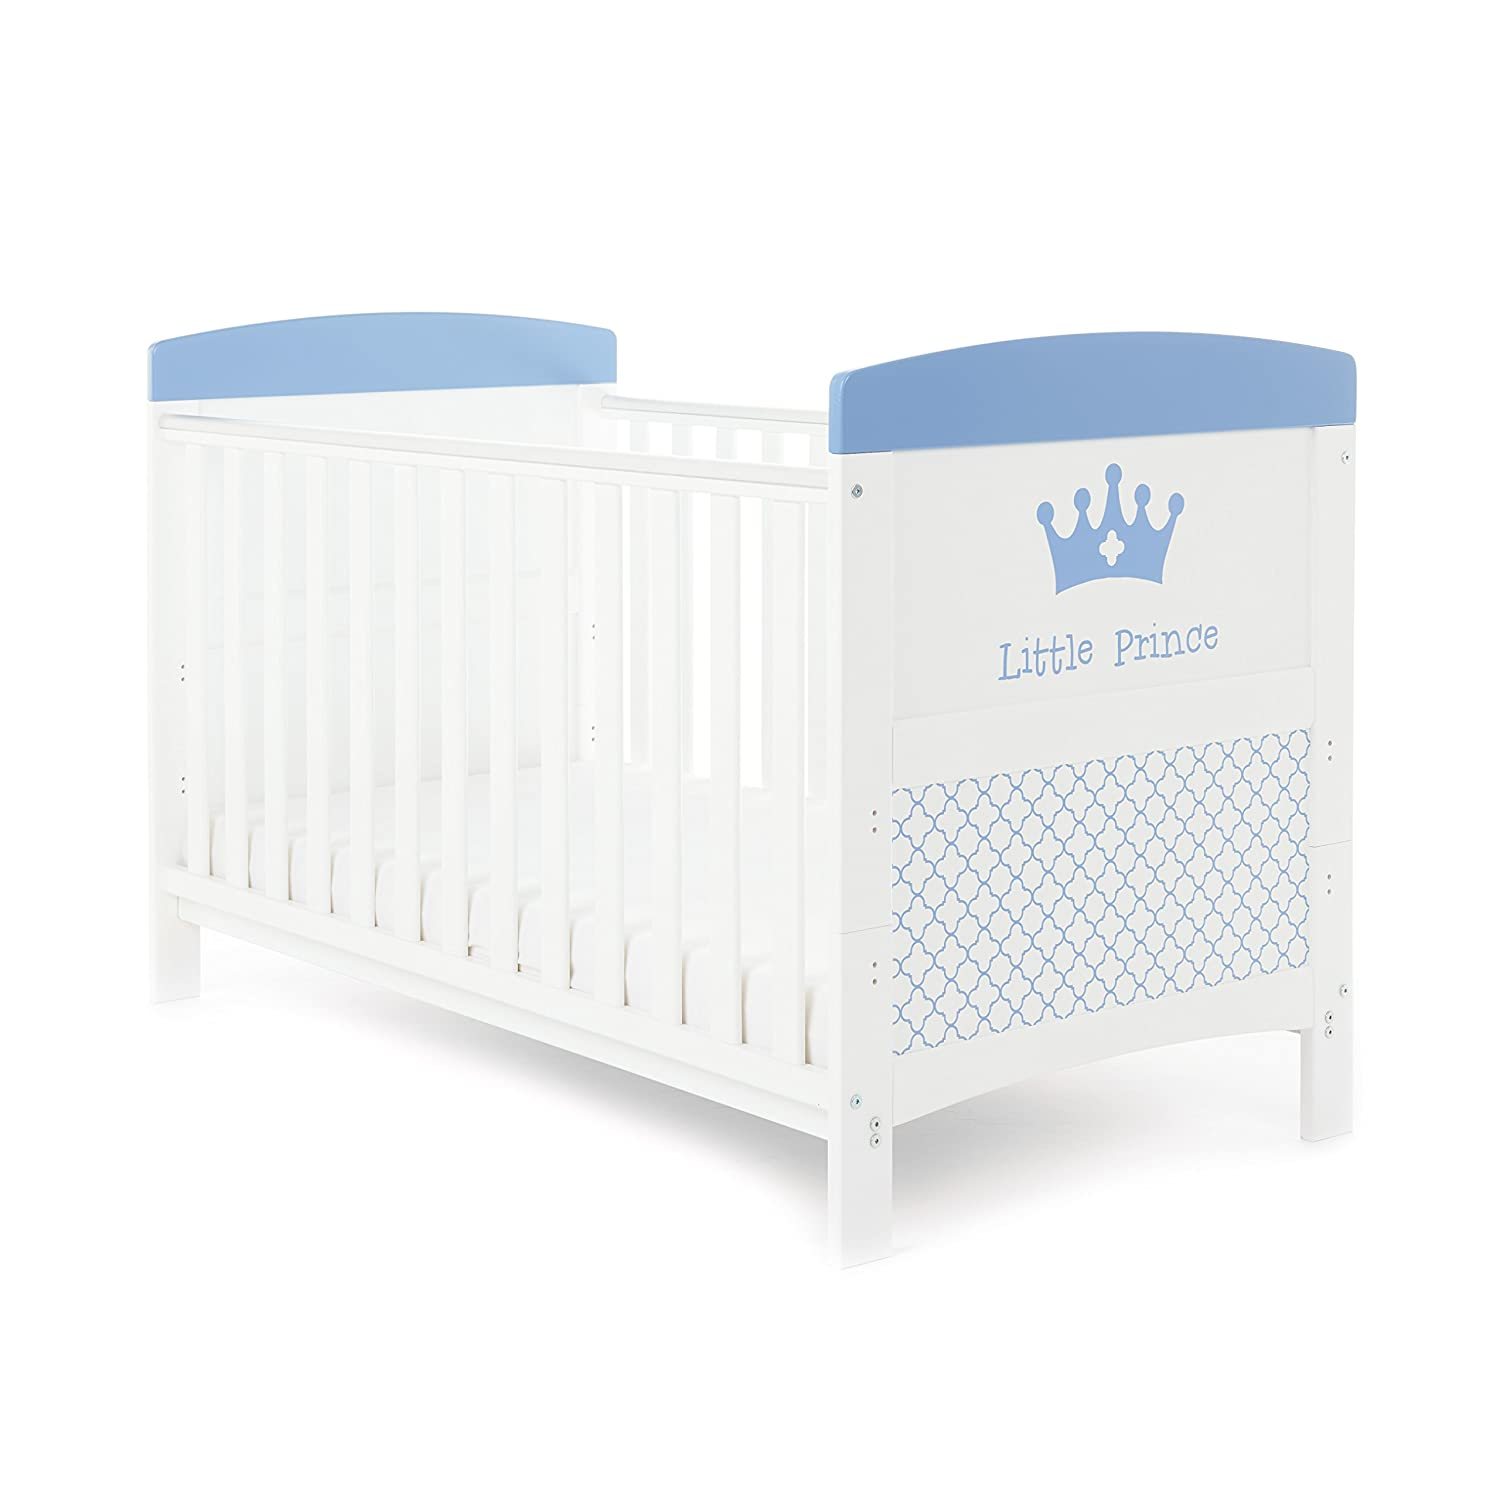 Obaby Grace Inspire Cot Bed, Little Prince Kims Baby Equipment Co Ltd 21OB1724